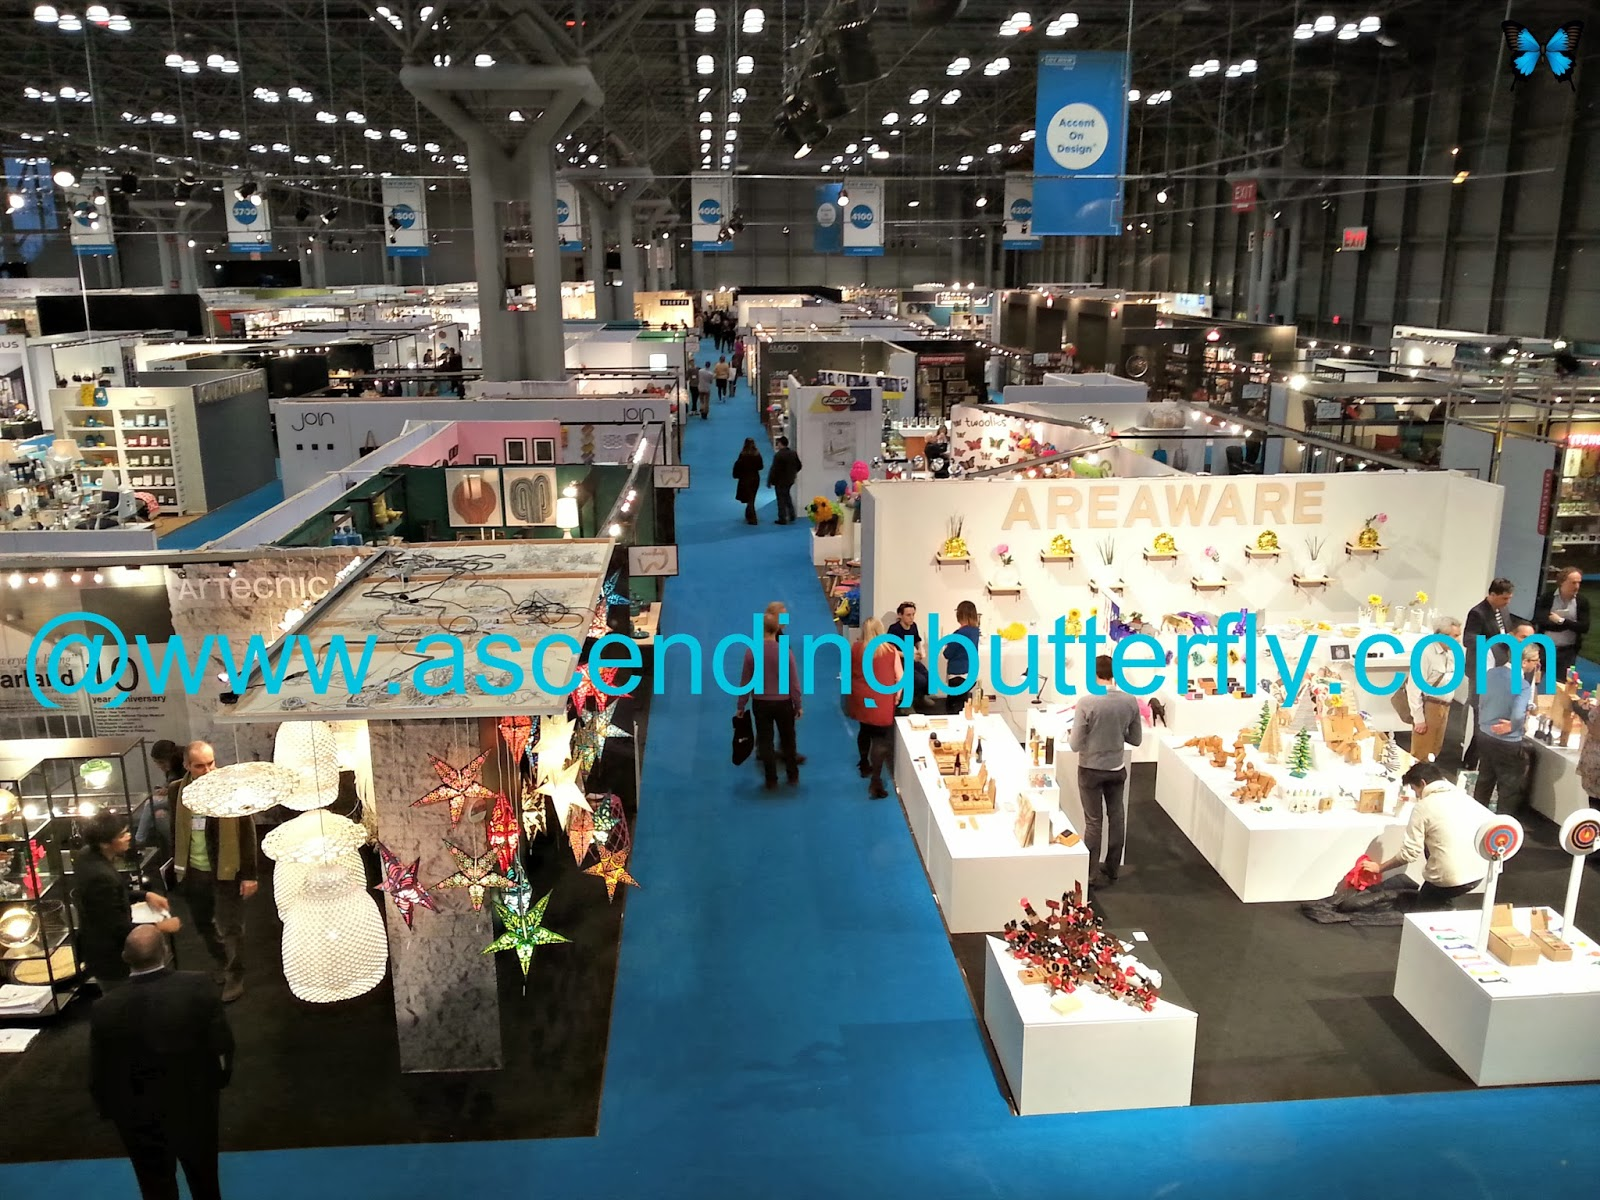 Overview of the NY Now Trade-show from my vantage point upstairs in the Press Area, photography, pictures